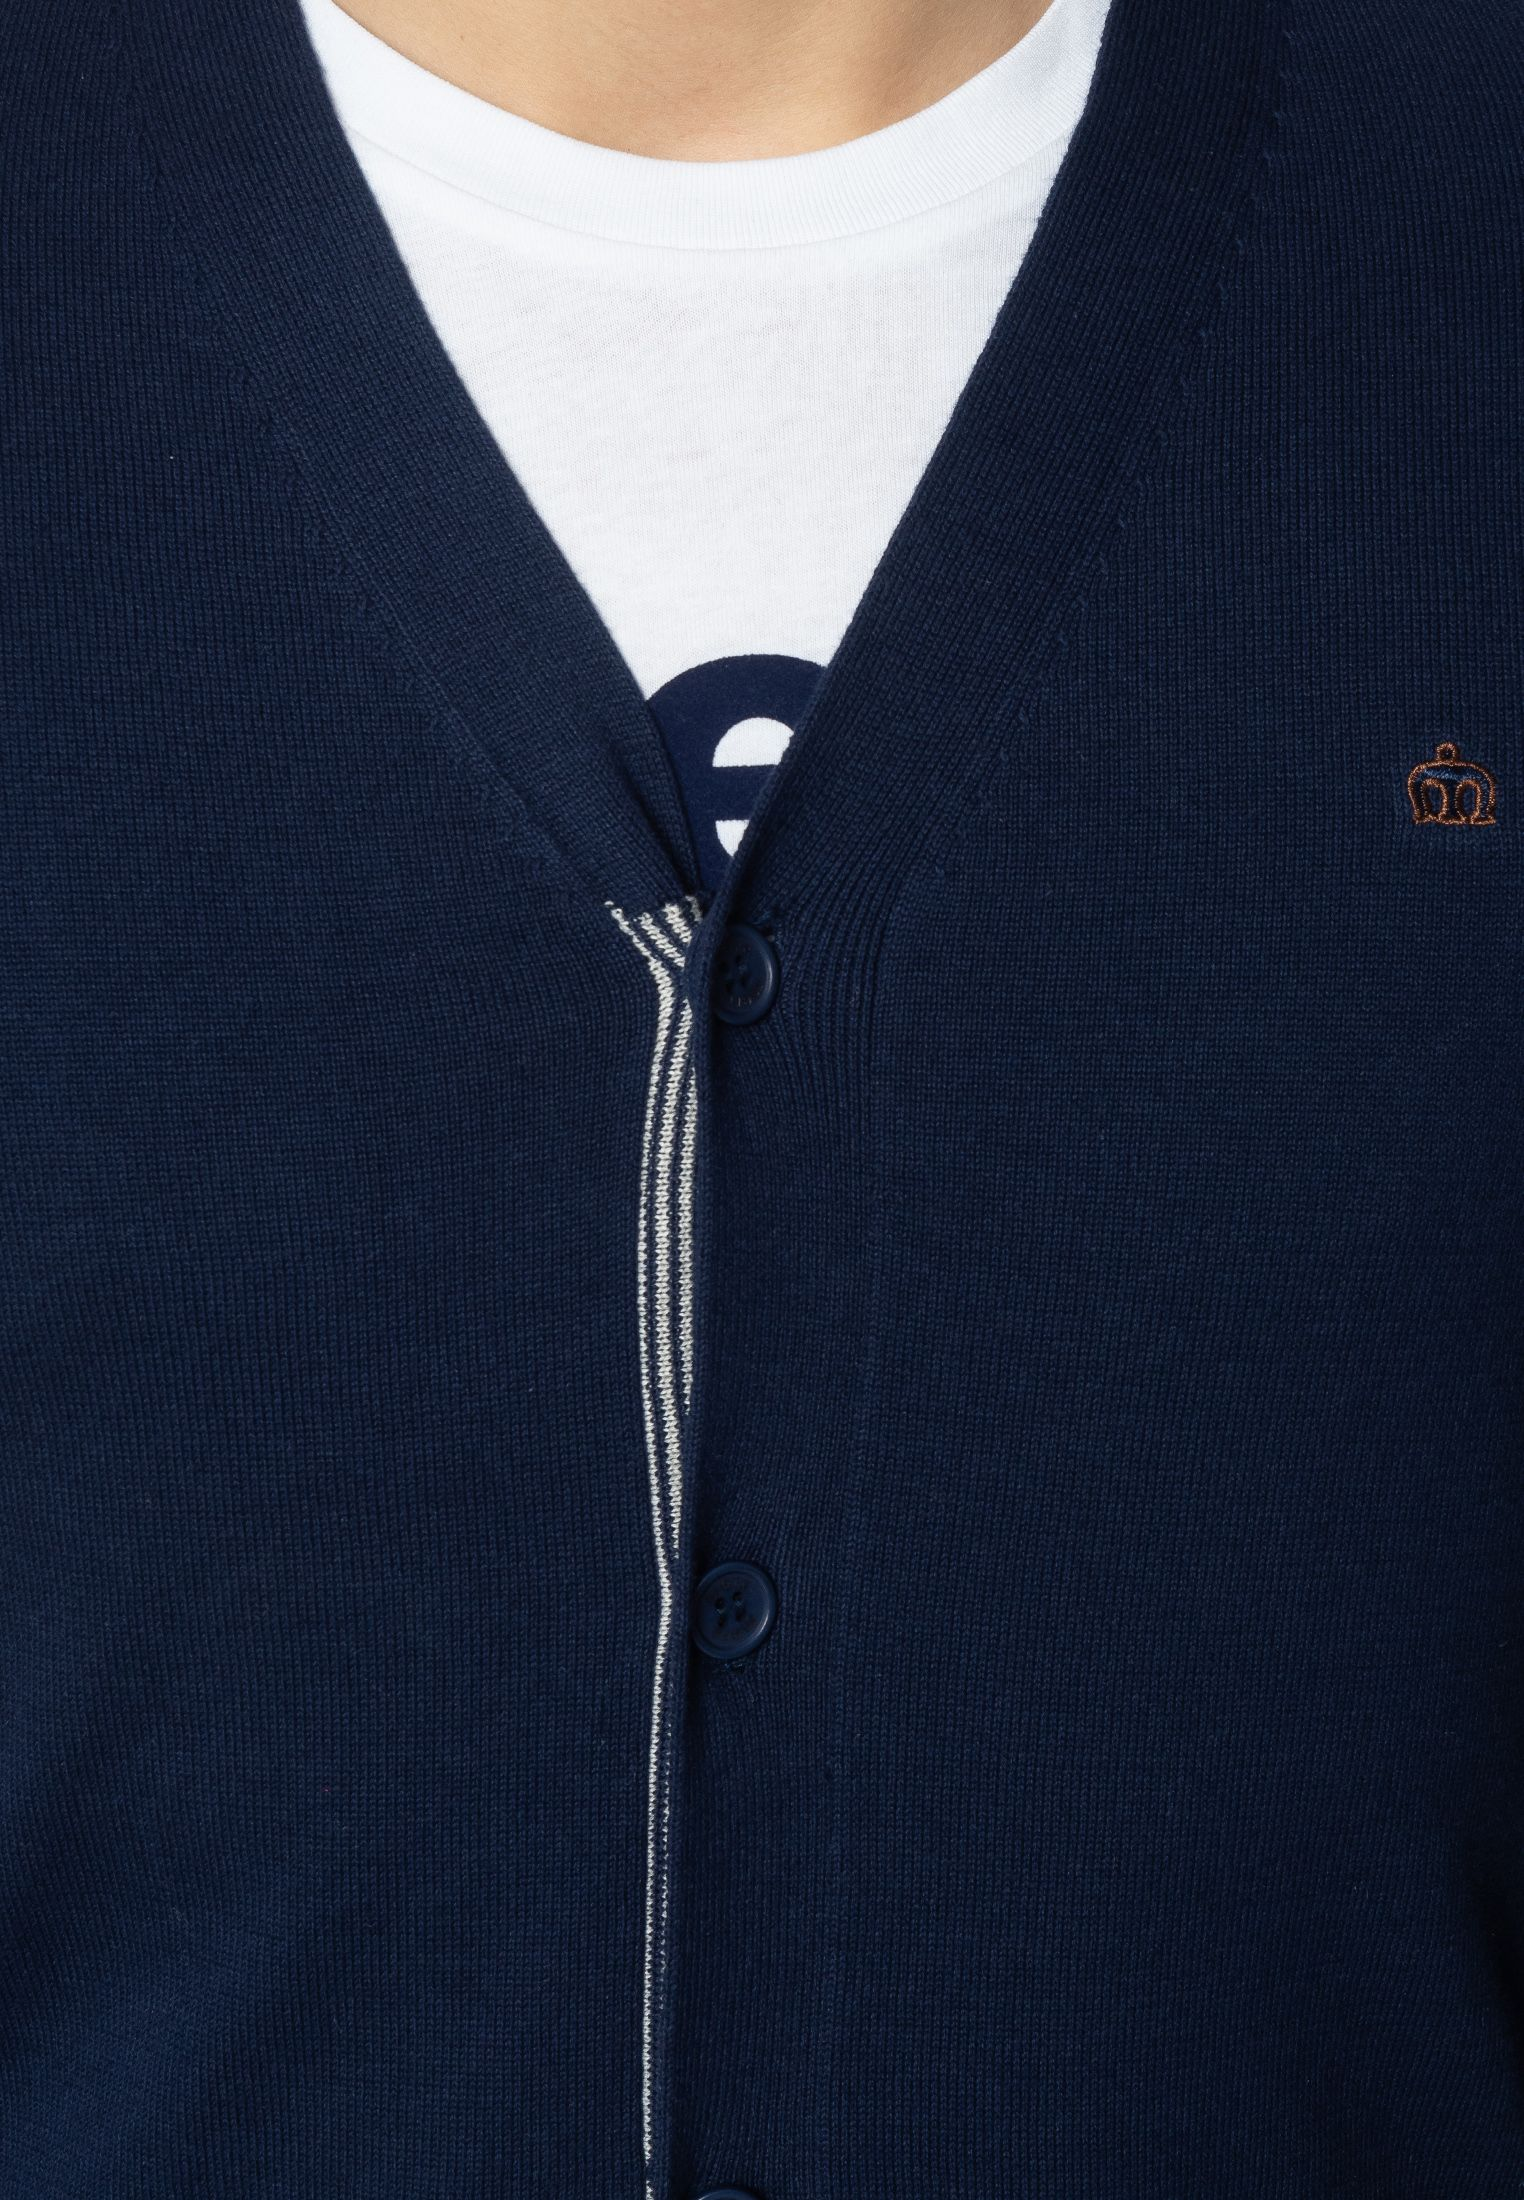 Beckton Mens Fine Knitted Cotton Cardigan With Tipped Details In Navy